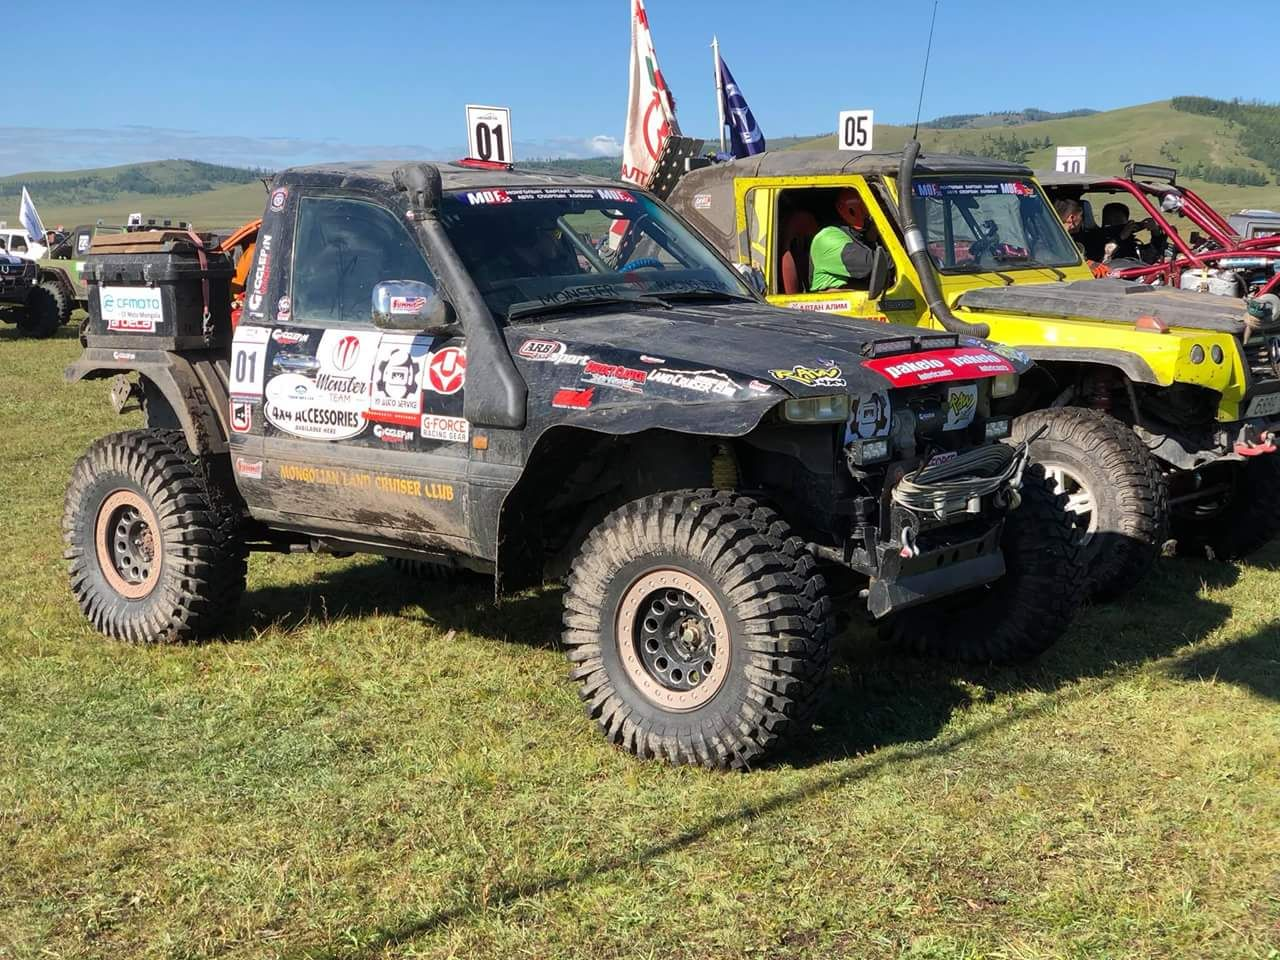 EXTREME 4x4 OFF-ROAD VEHICLES